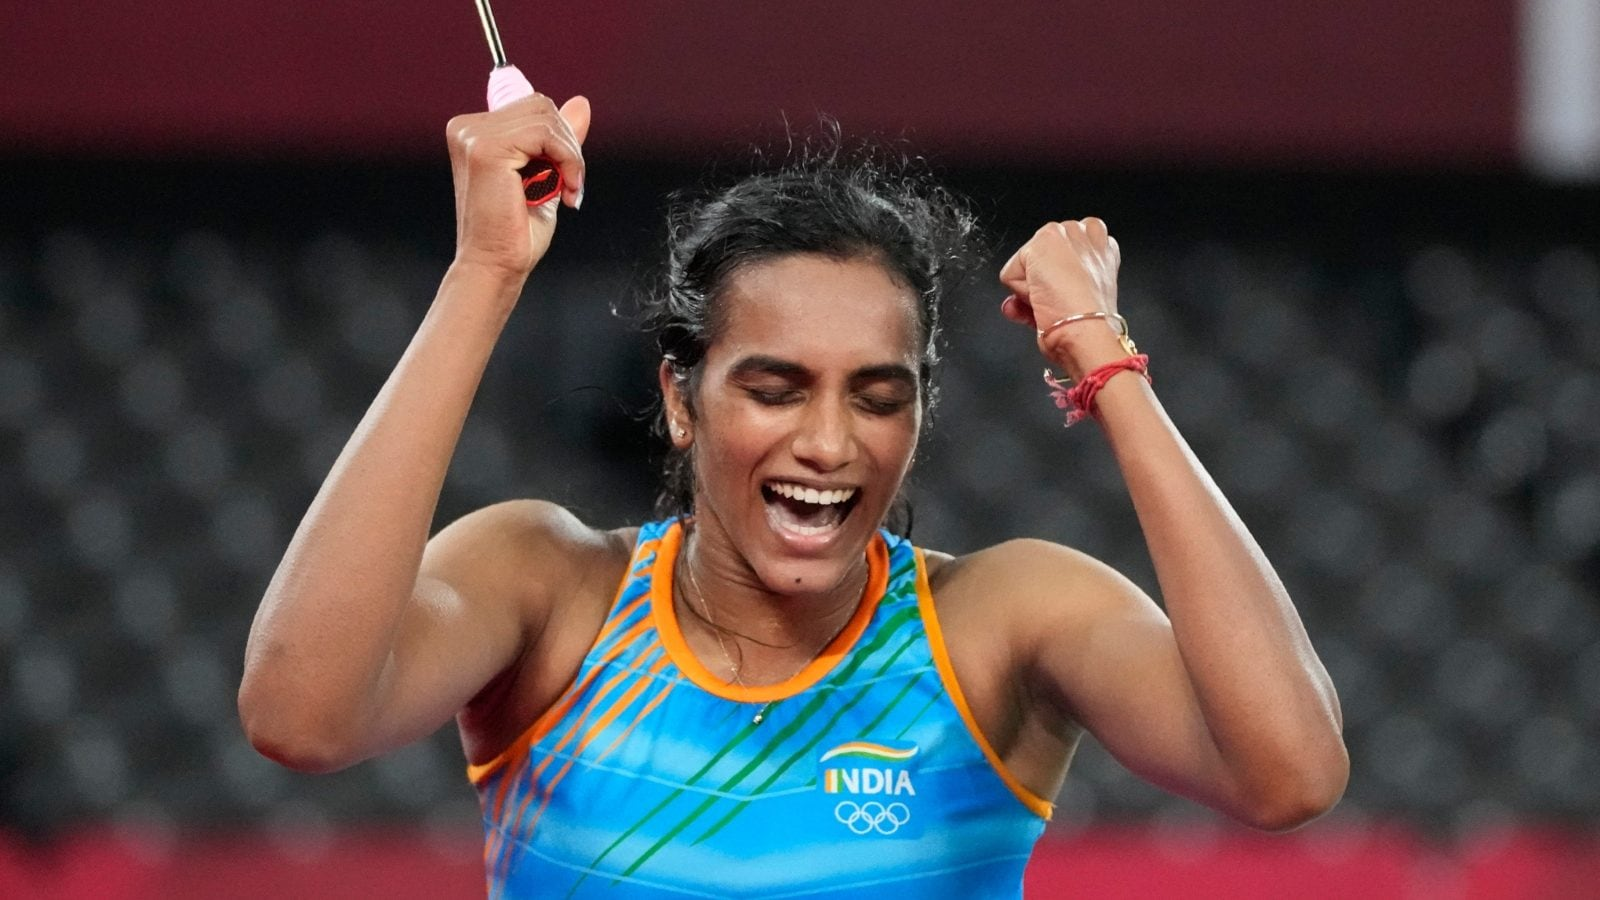 PV Sindhu Wins Bronze: 'Never Comes Back Without Raising Tri Colour'